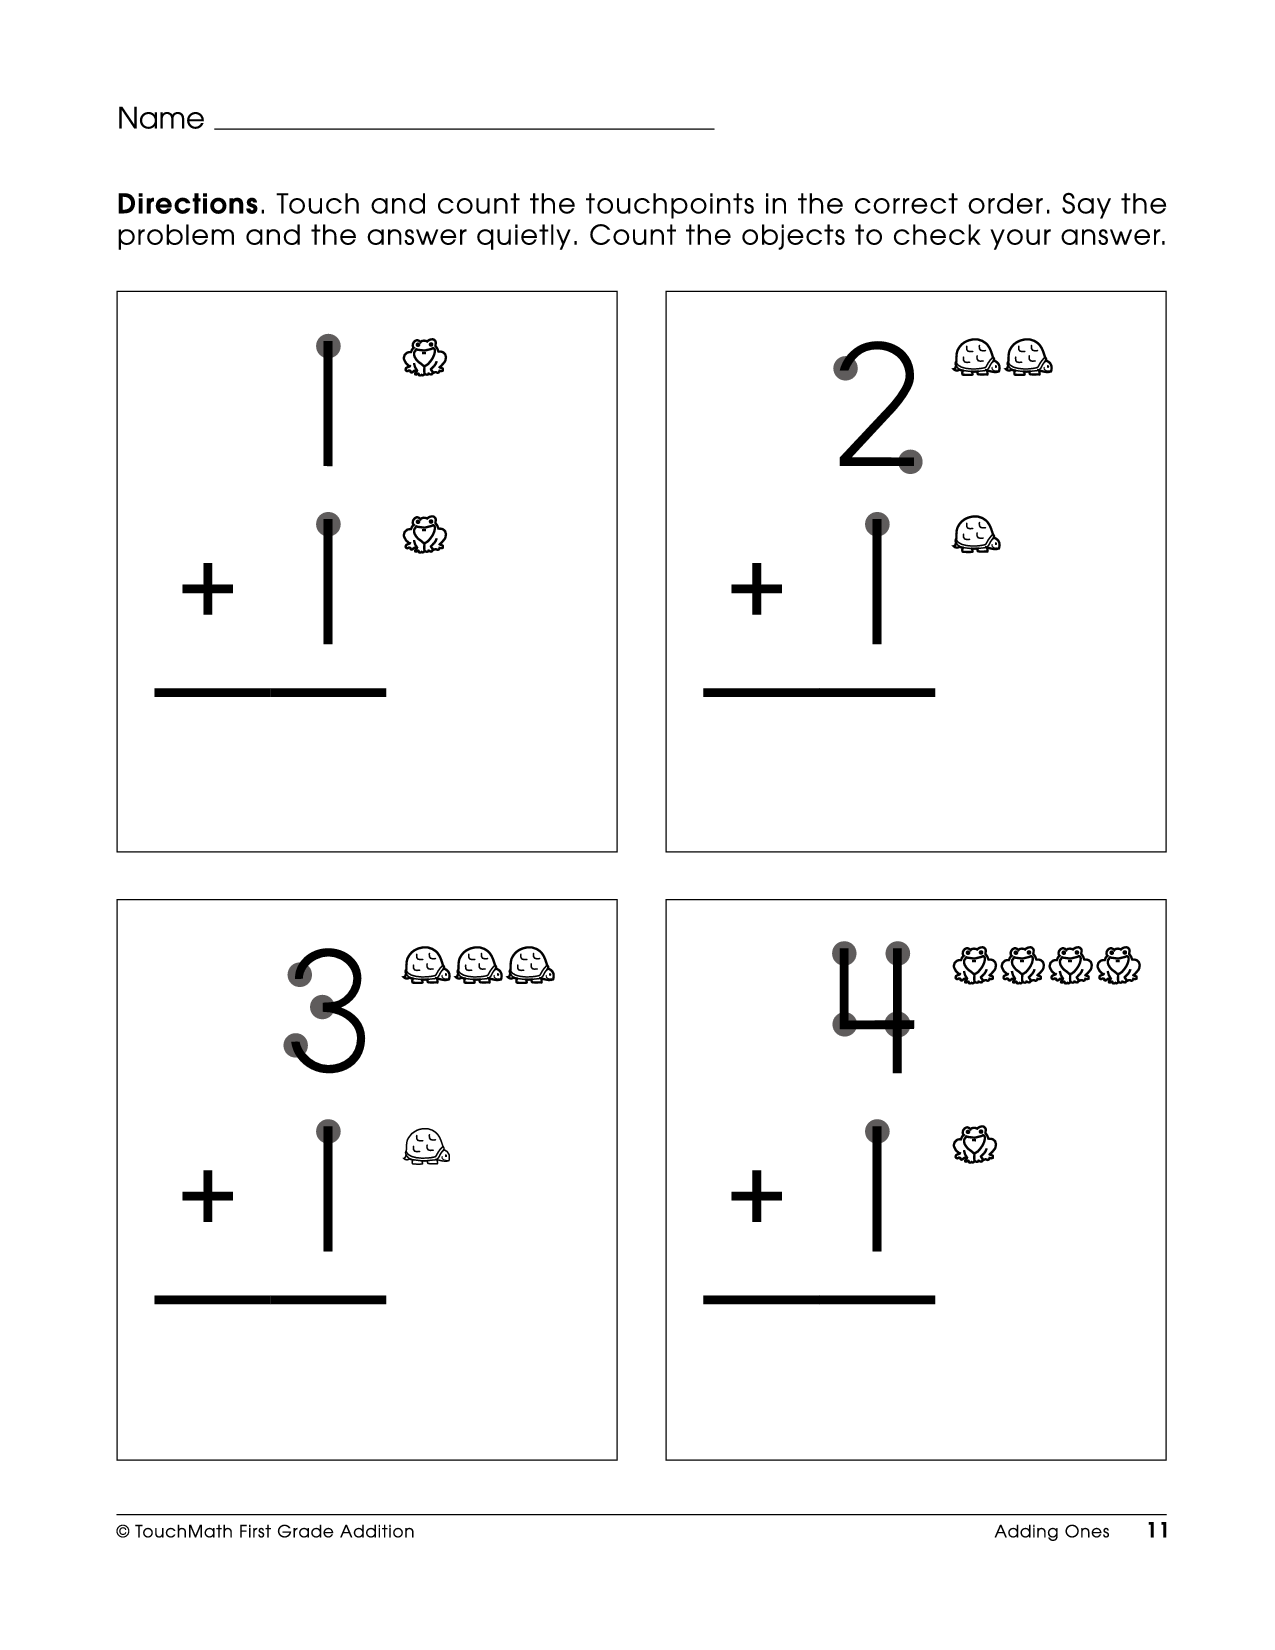 Worksheets Touch Math Free Worksheets touch math free worksheets printable touchmath materials